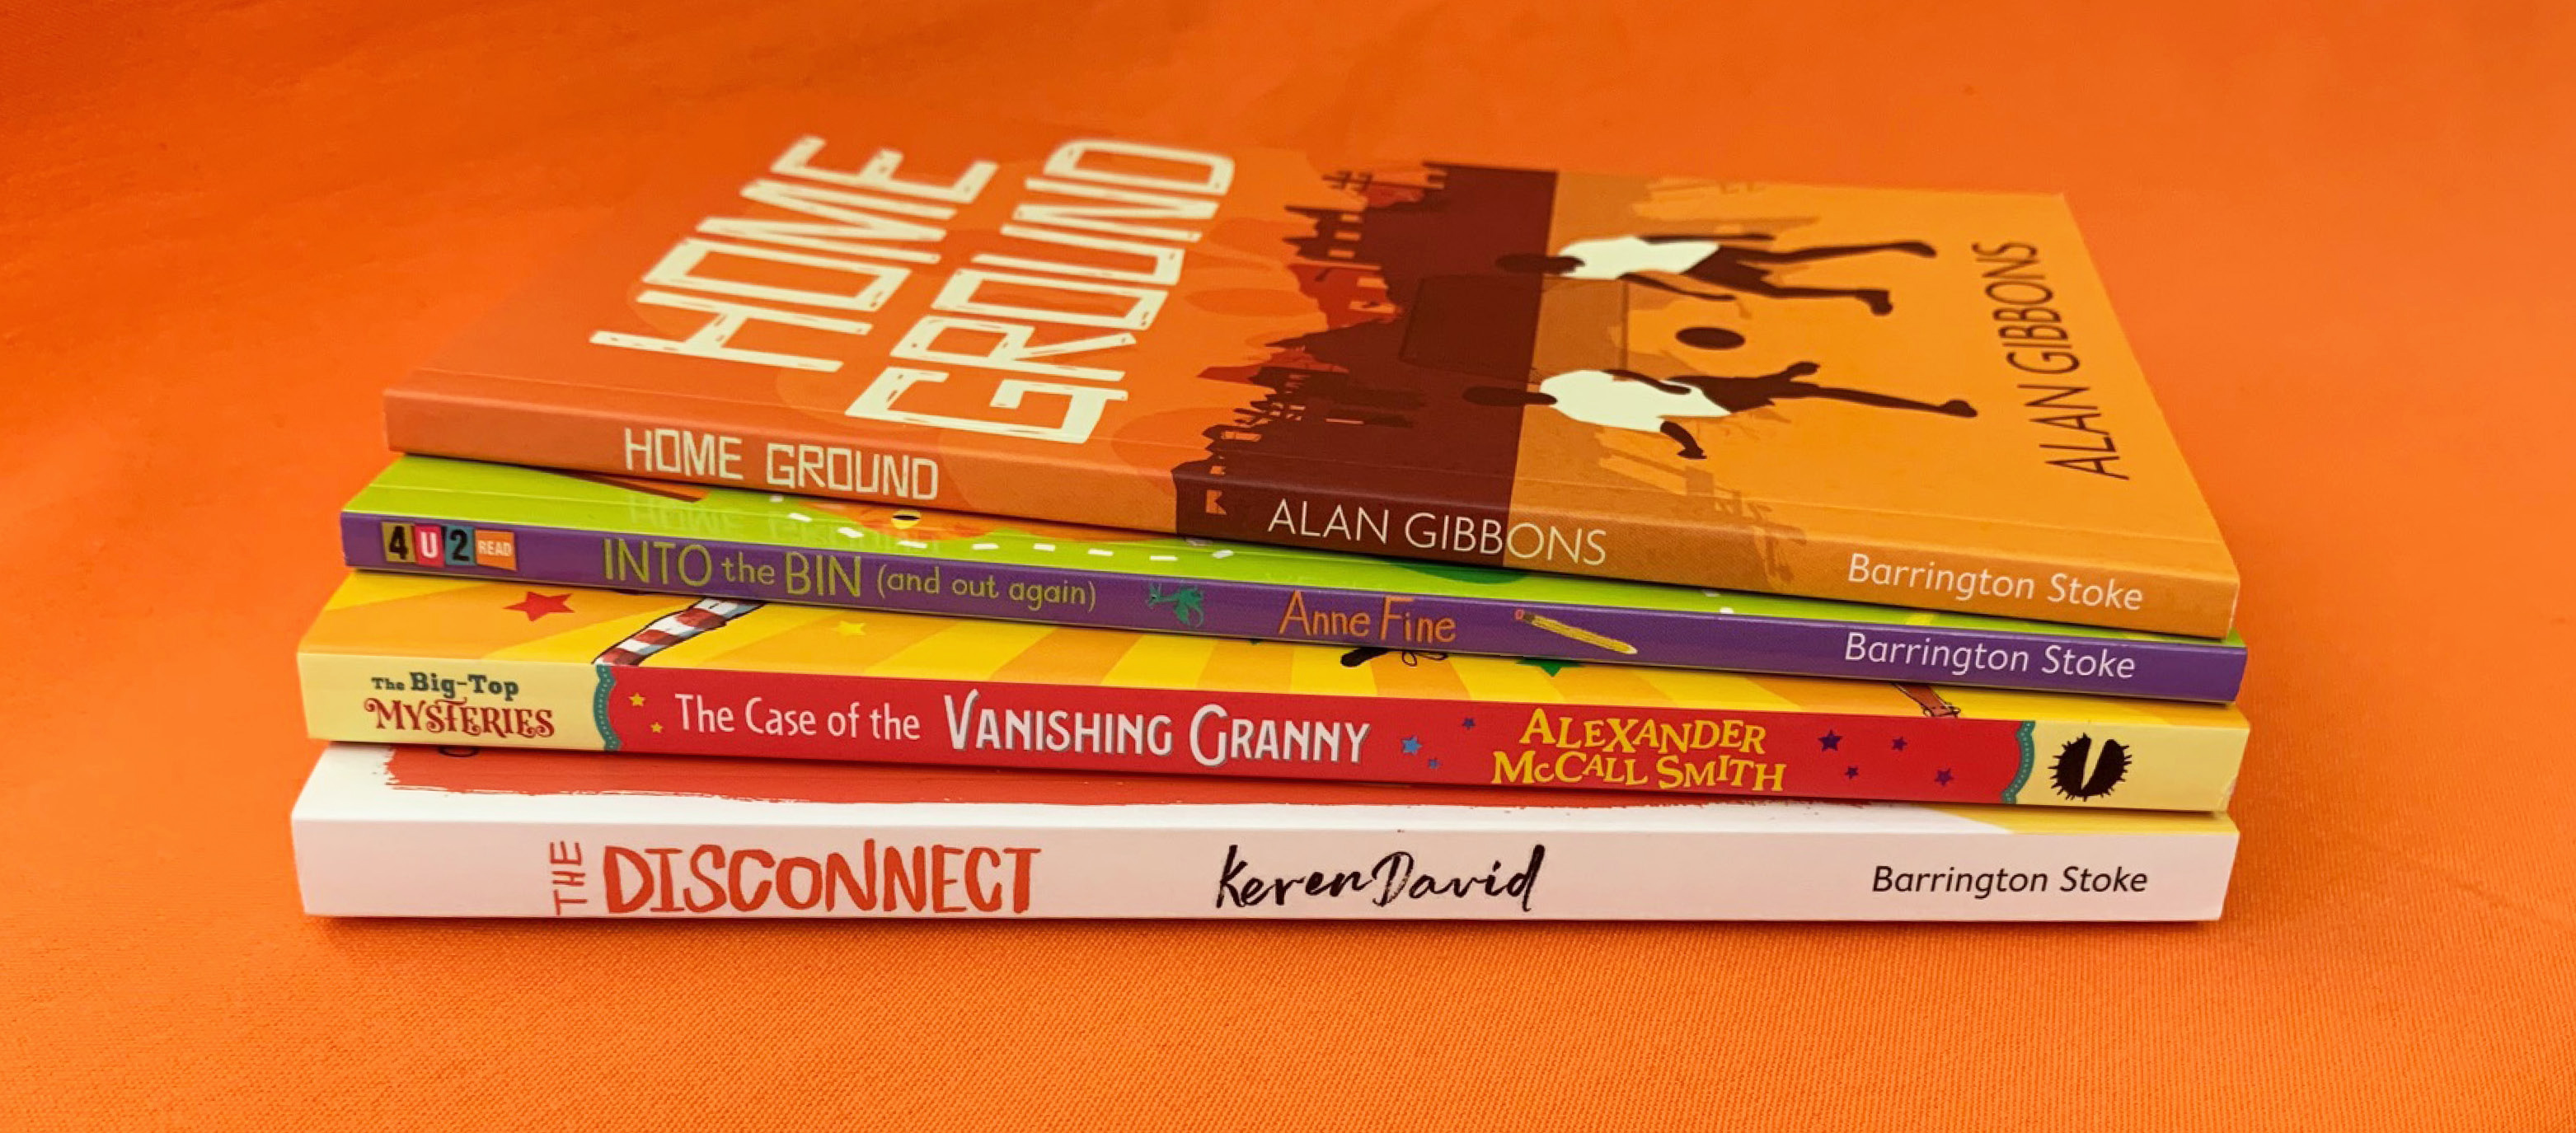 Photograph of the stack of New April Titles!